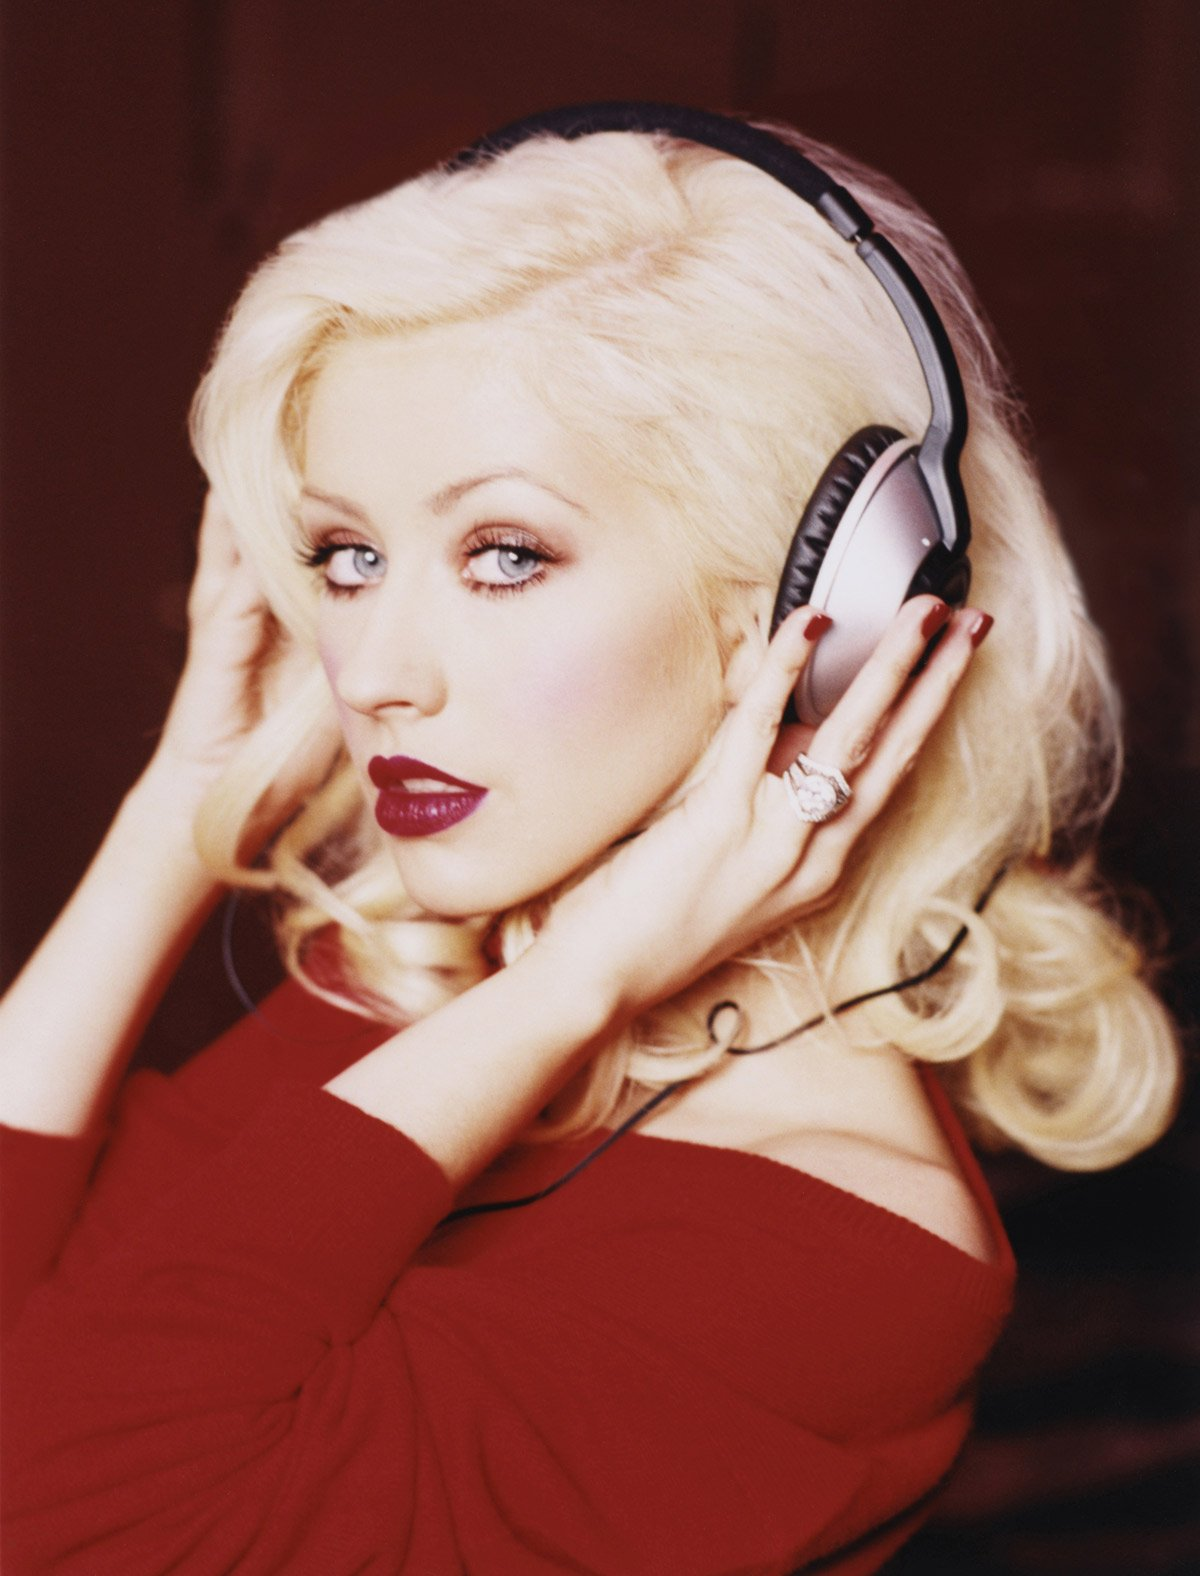 christina_aguilera_back_to_basics005